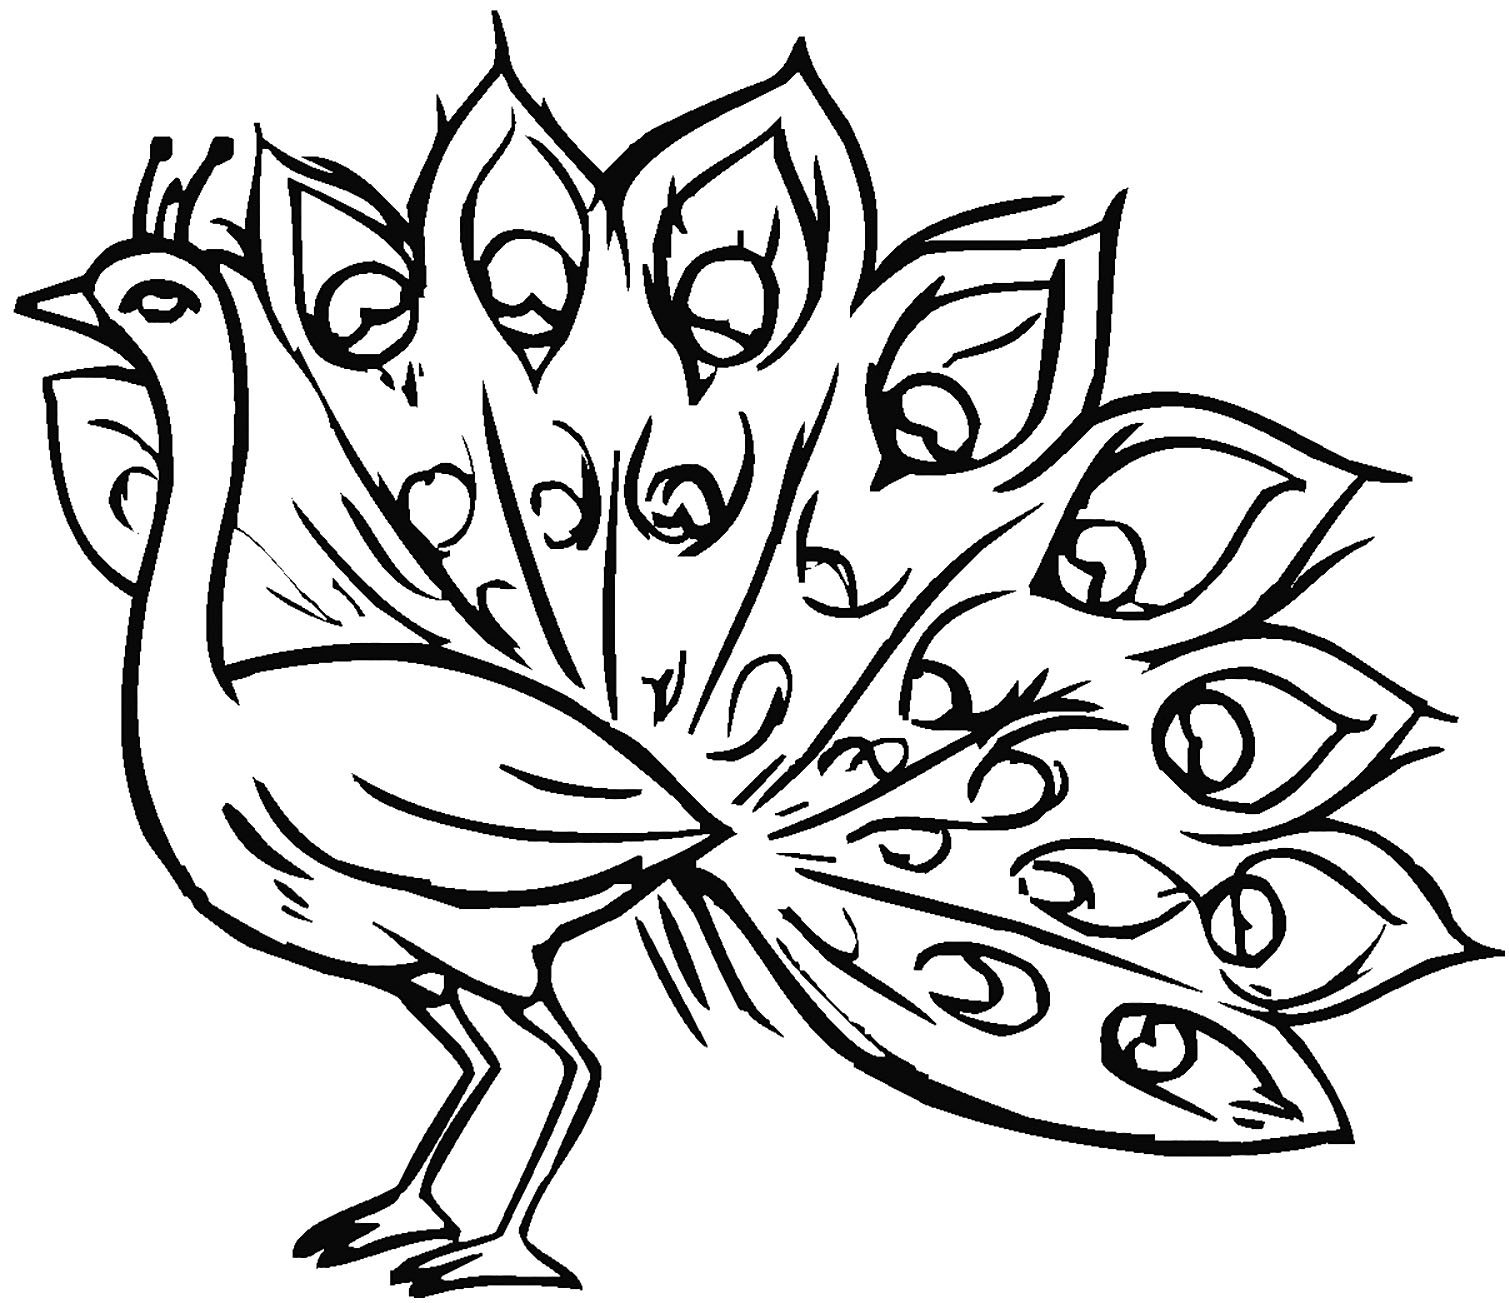 peacock pictures to color peacock printable coloring pages to peacock color pictures